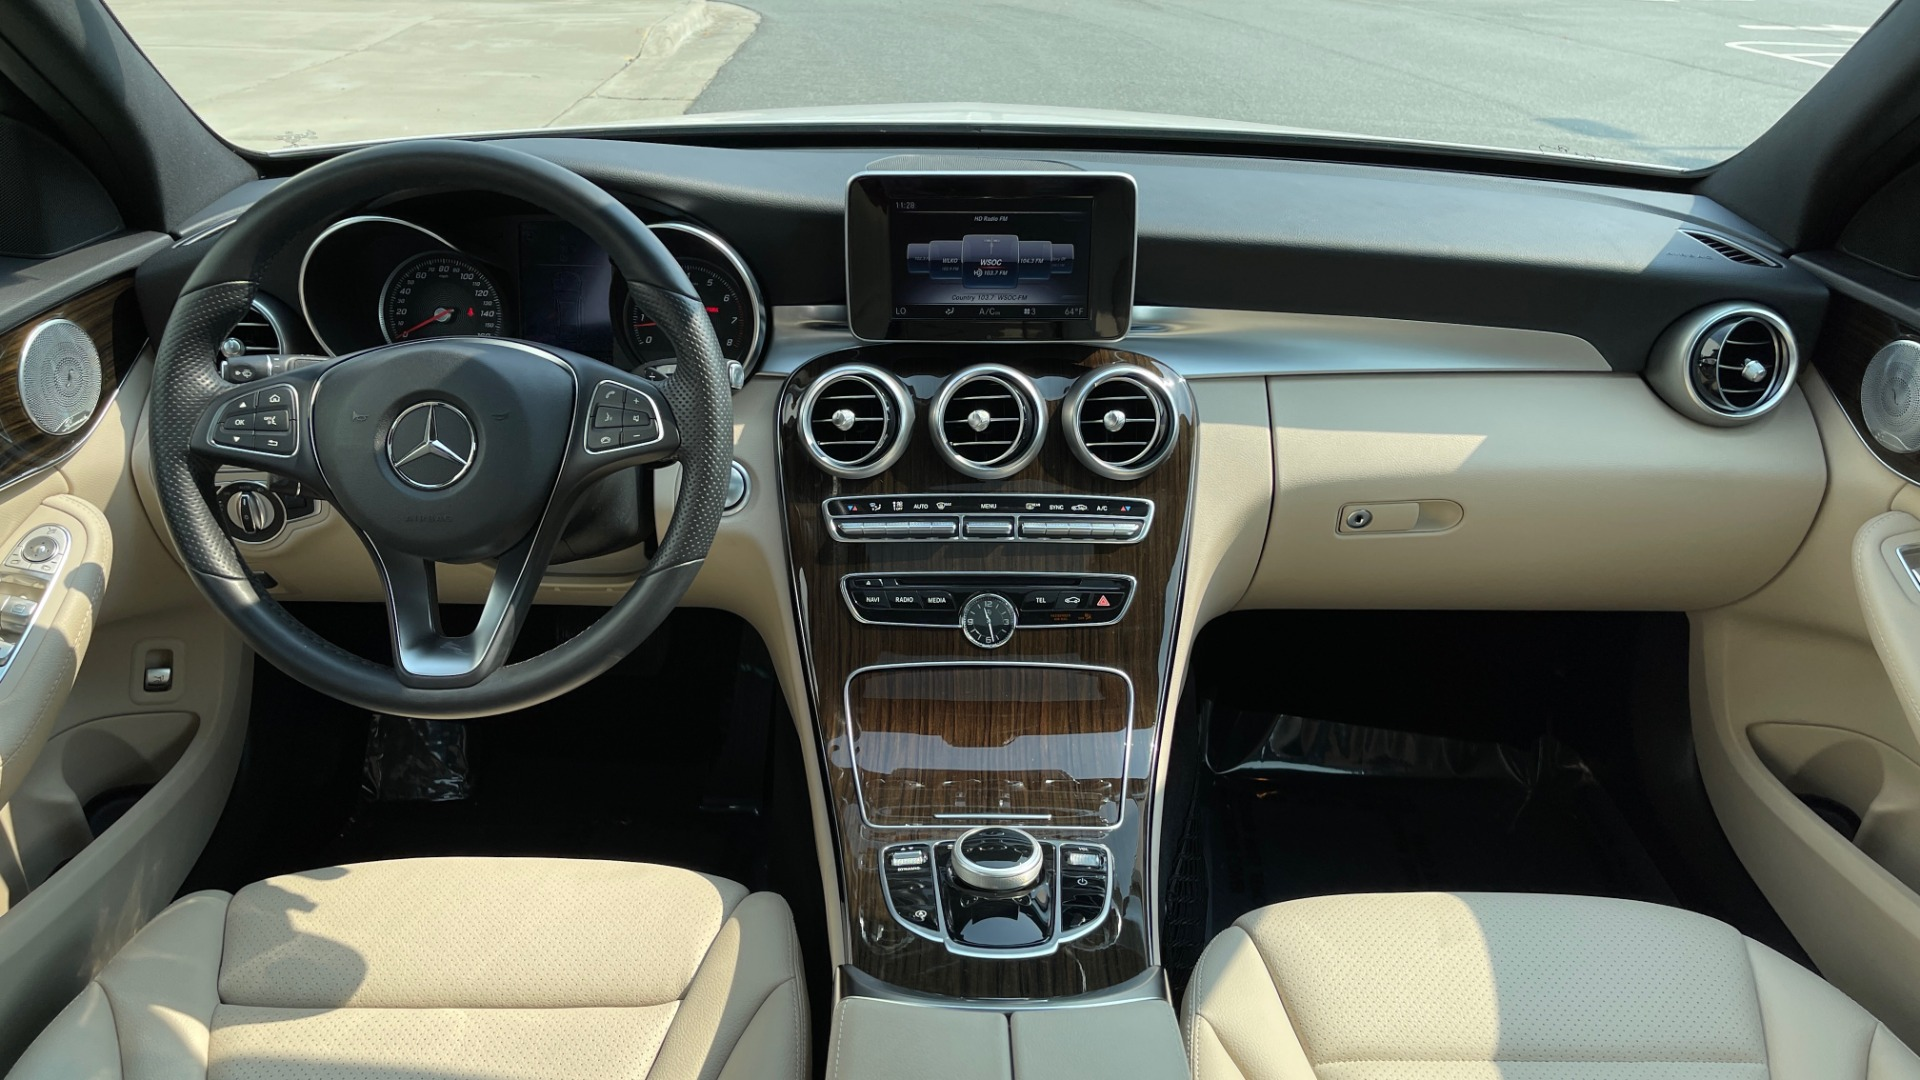 Used 2018 Mercedes-Benz C-Class C 300 4MATIC / PREMIUM / BURMESTER / HTD STS / SUNROOF / REARVIEW for sale $33,995 at Formula Imports in Charlotte NC 28227 48